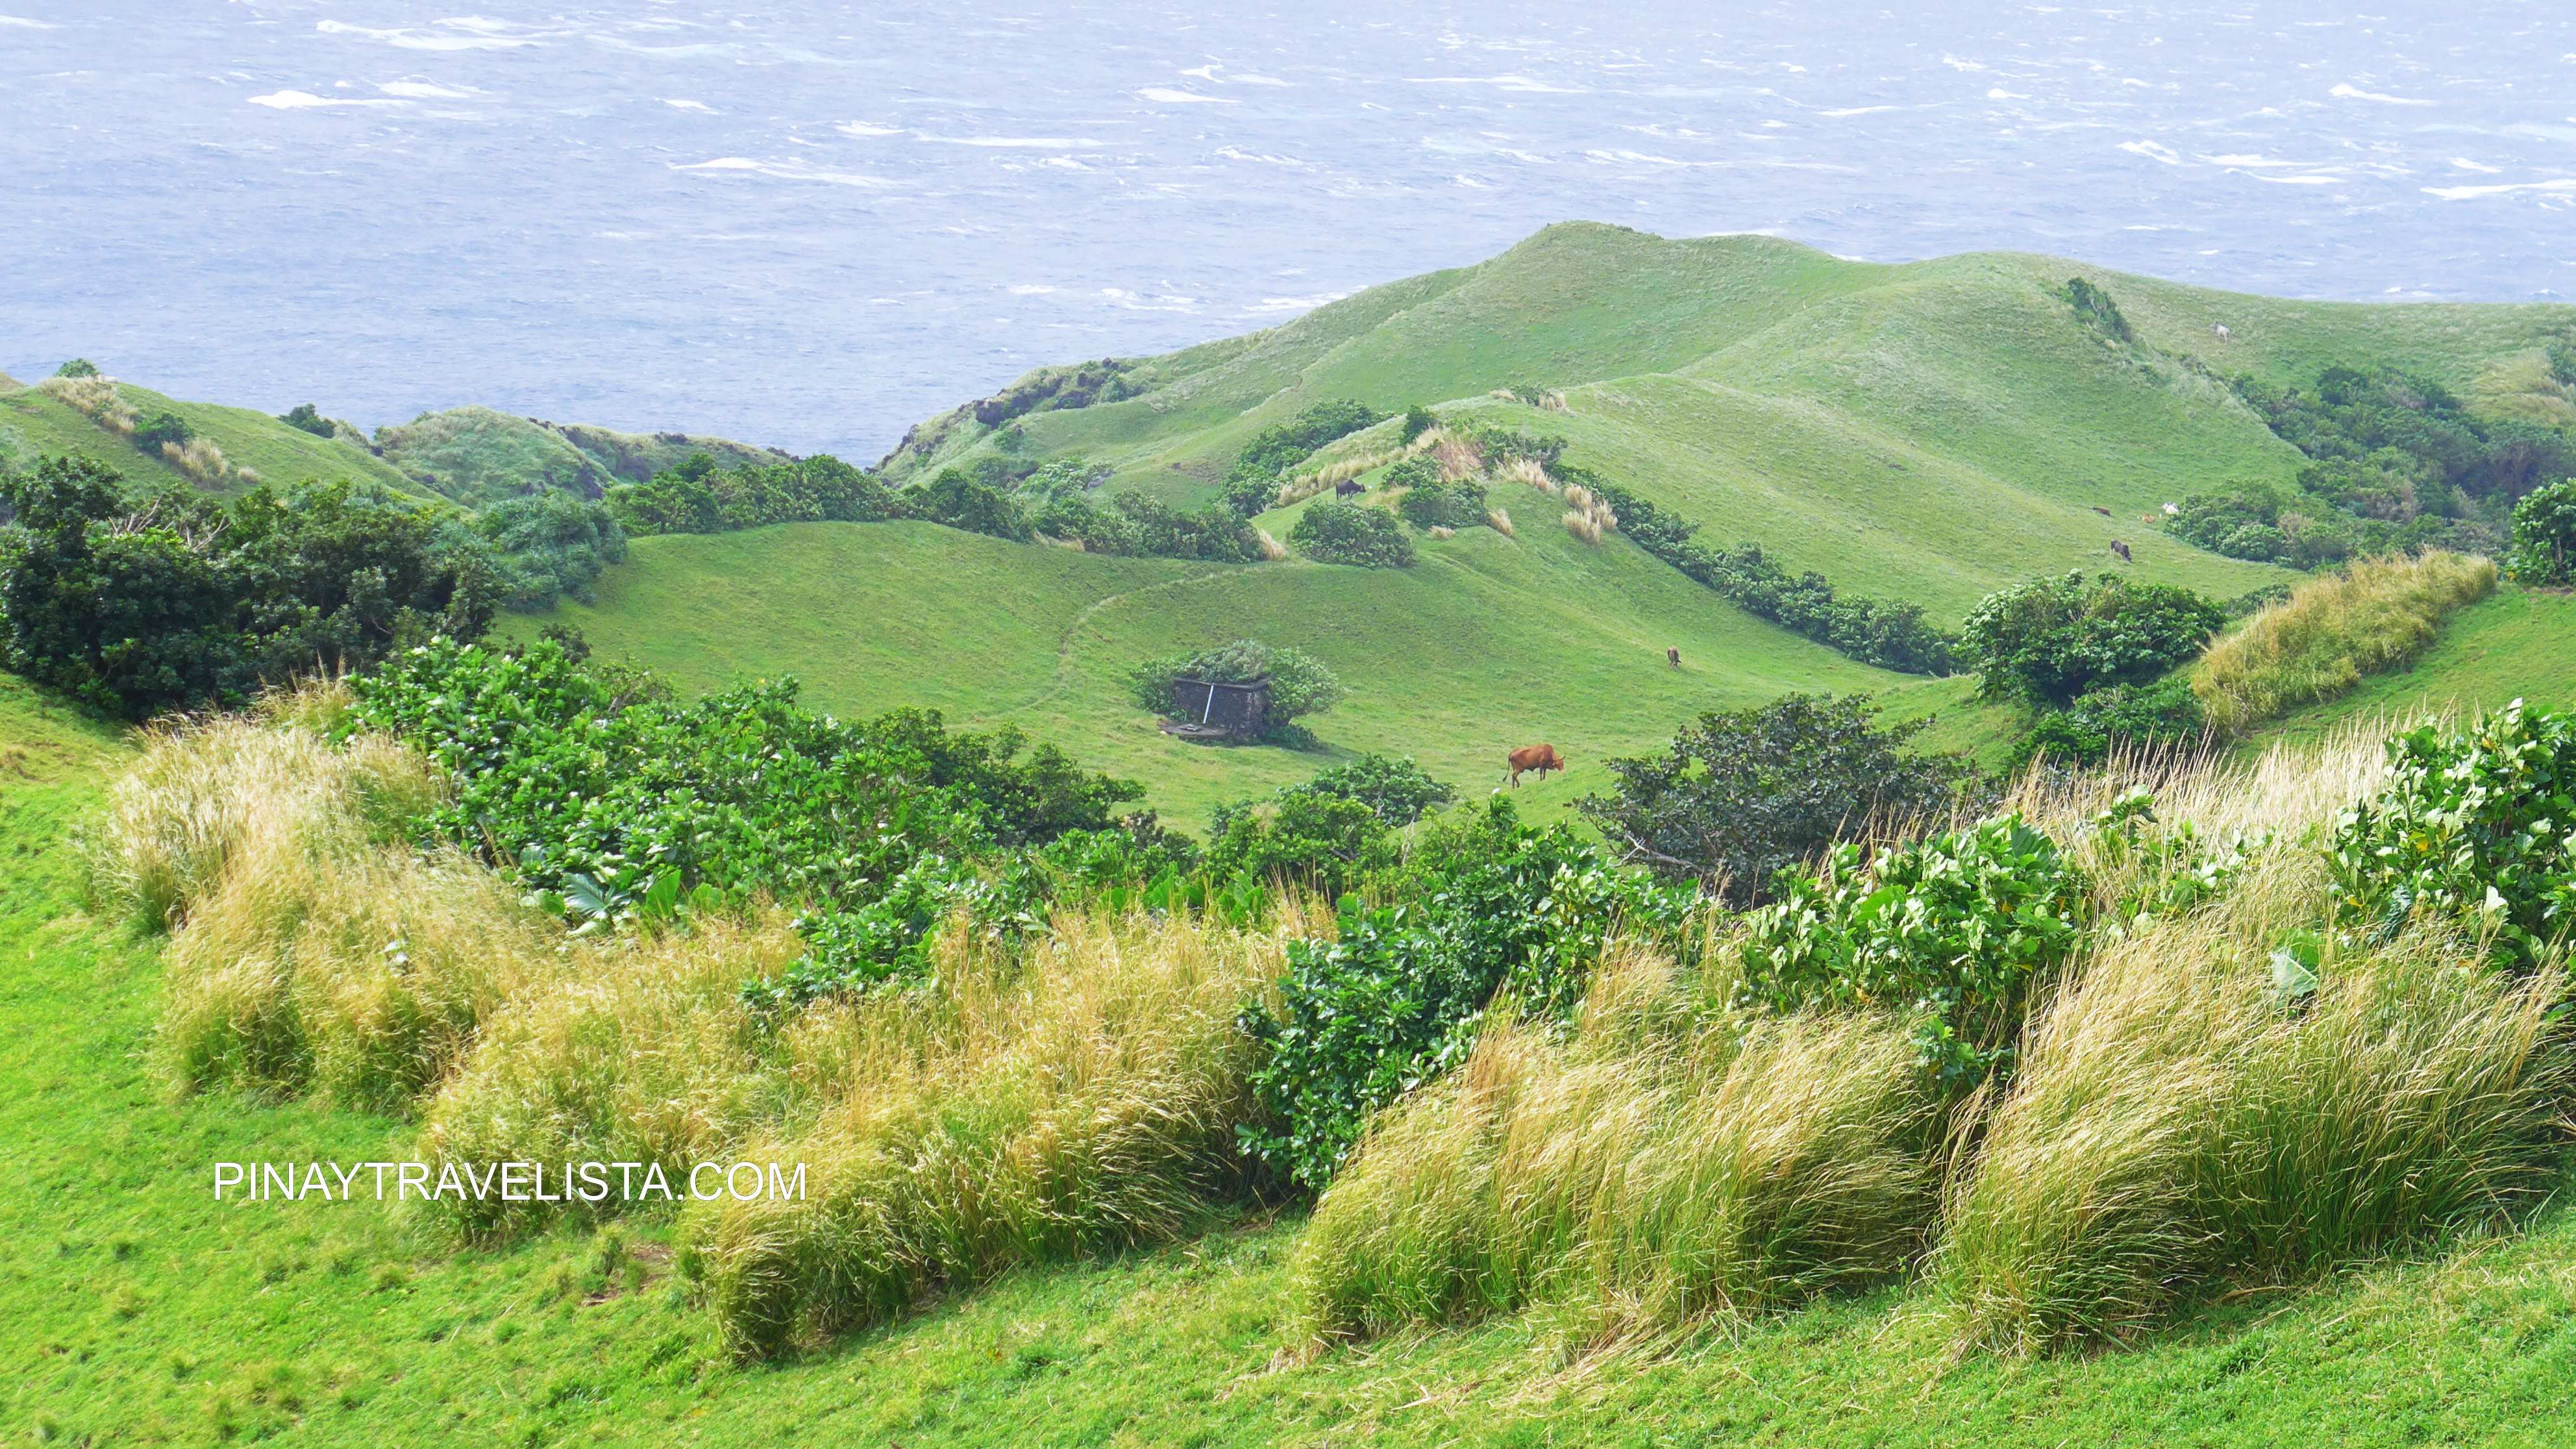 BATANES TRAVEL GUIDE | How To Get There, Things to to Do, & Where to Stay